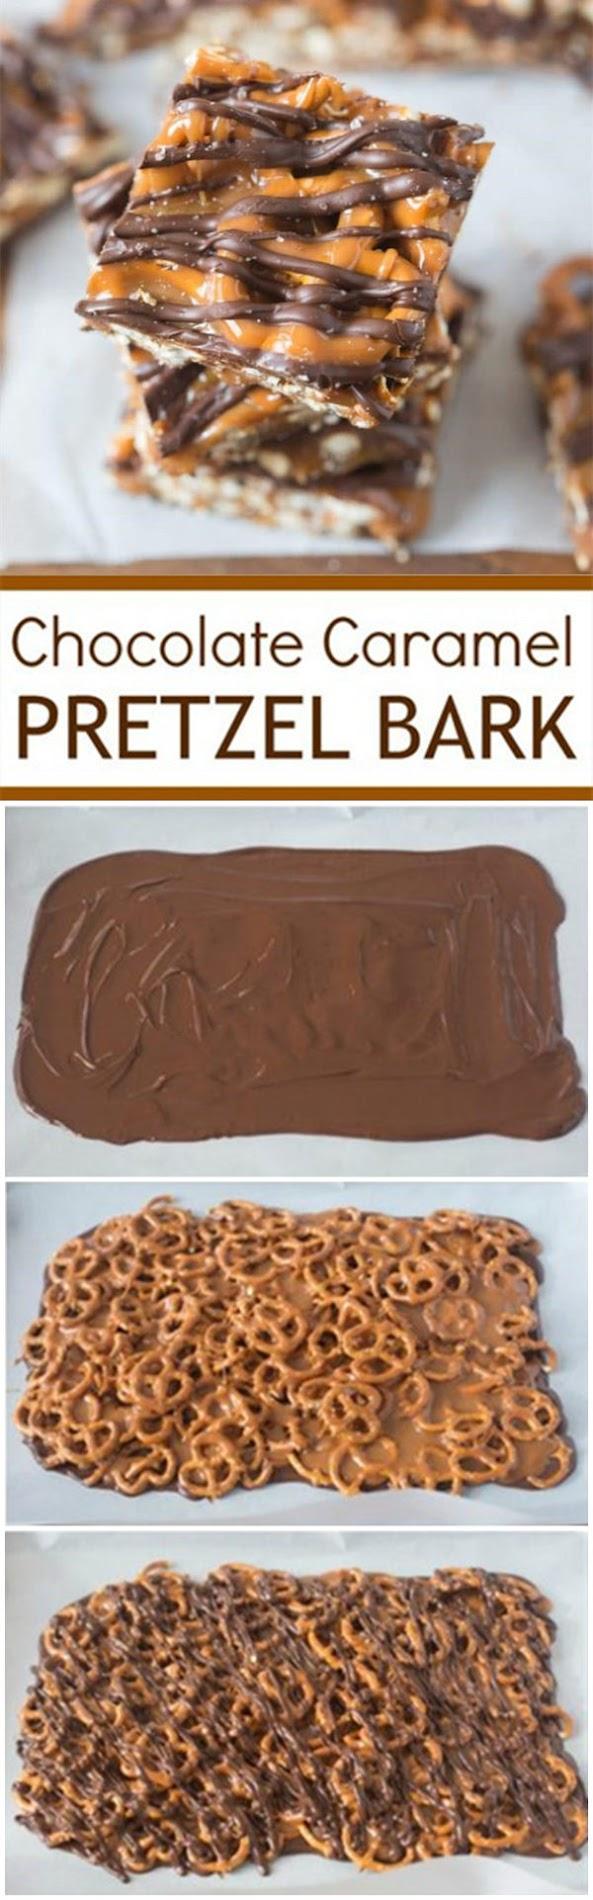 Salted Chocolate and Caramel Pretzel Bars